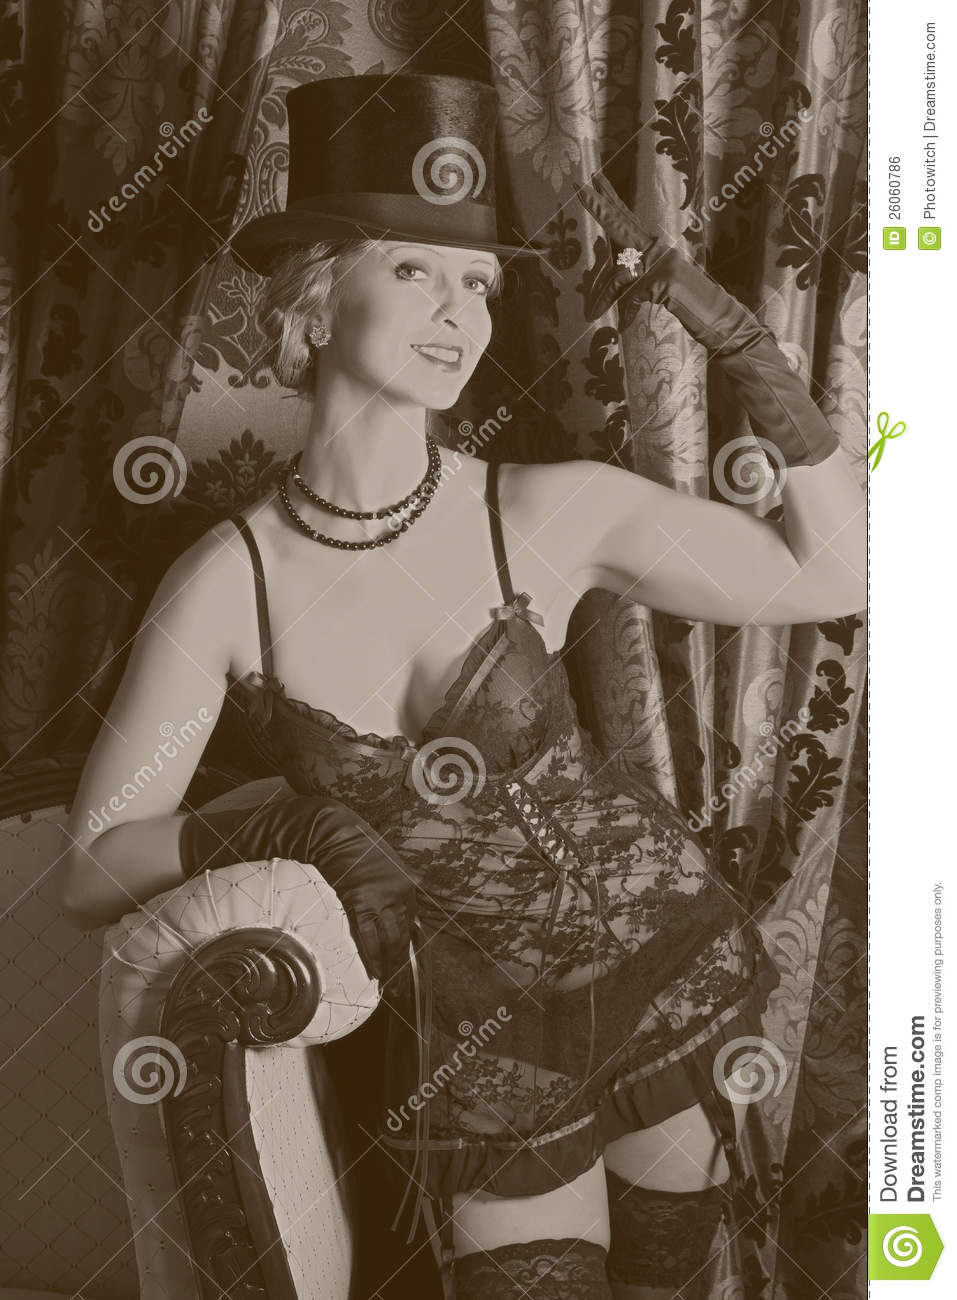 moulin rouge style in sepia royalty free stock image